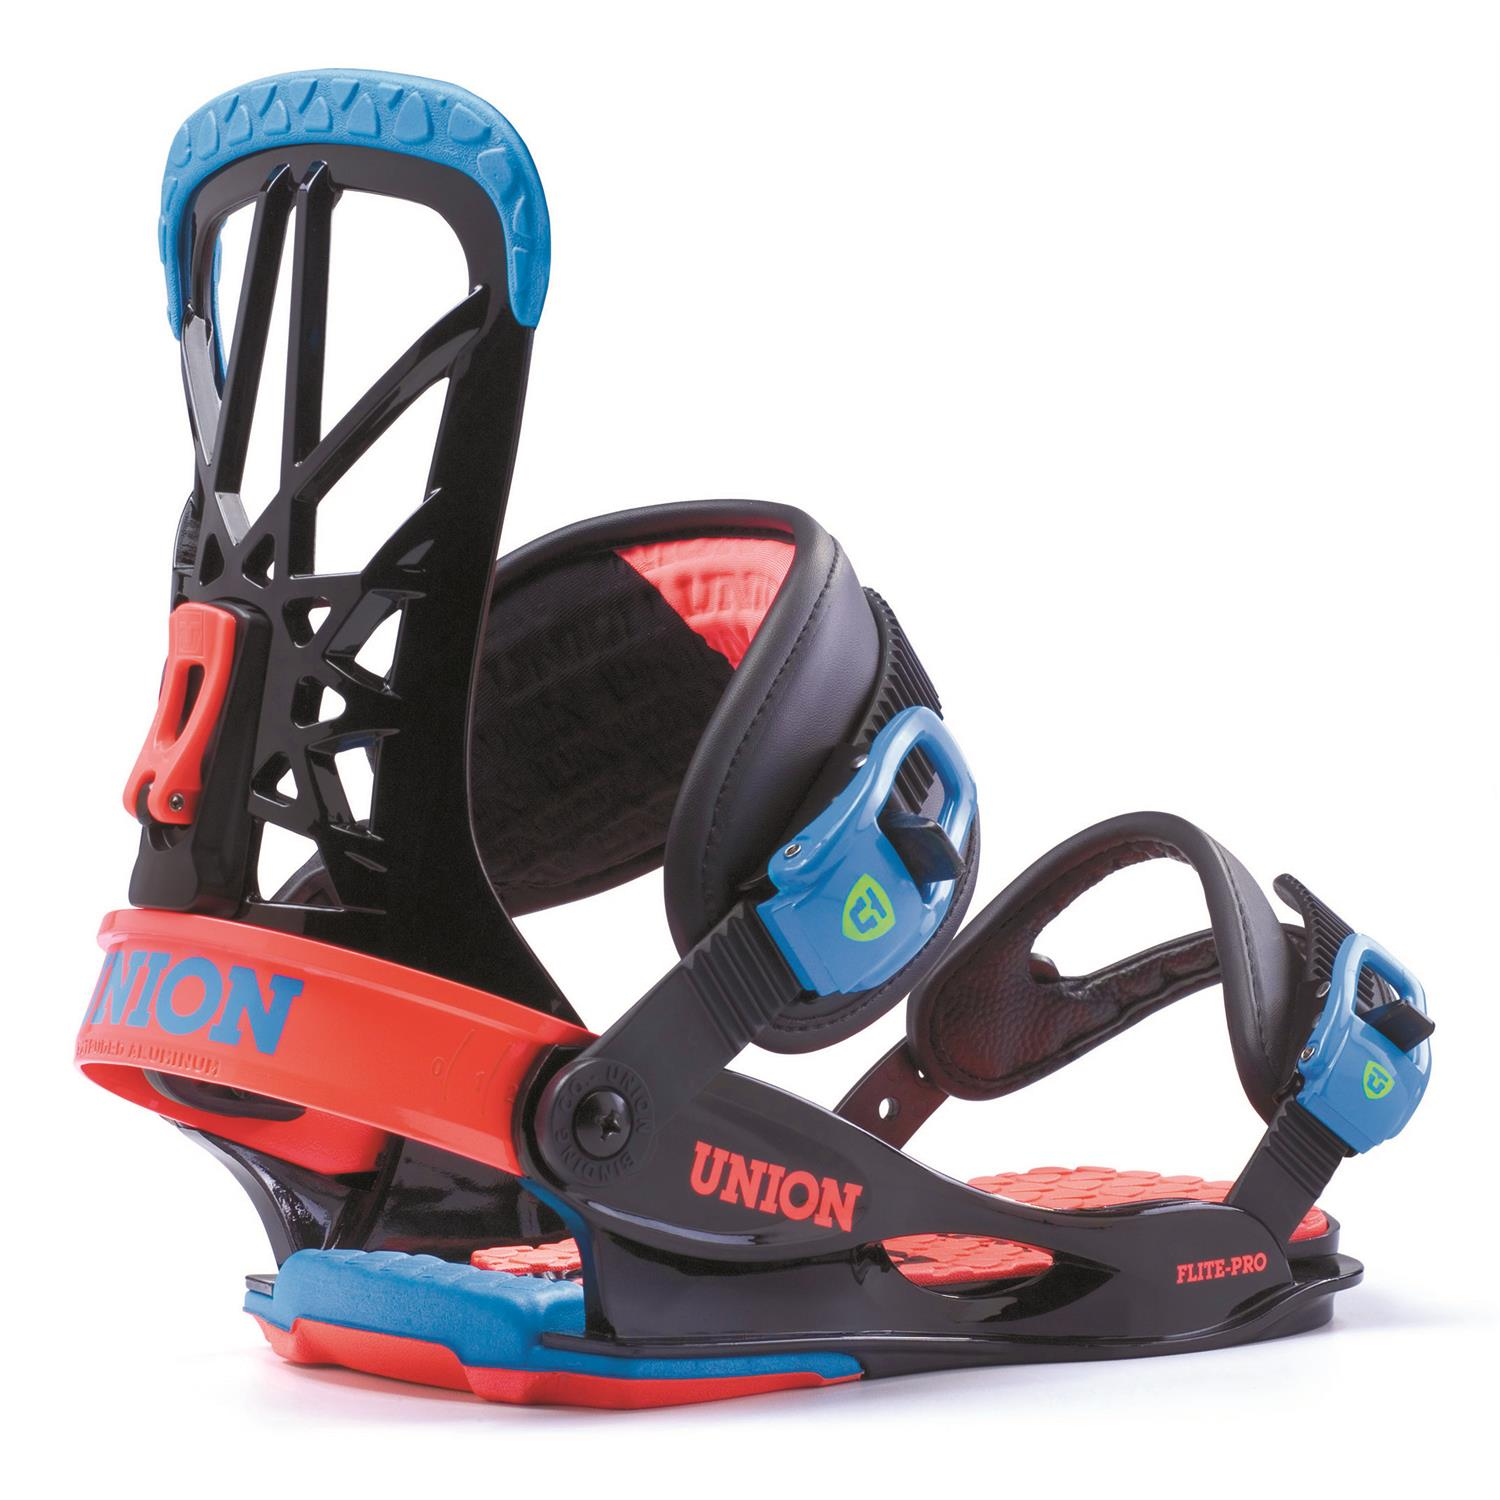 Union Flite Pro Snowboard Bindings 2014